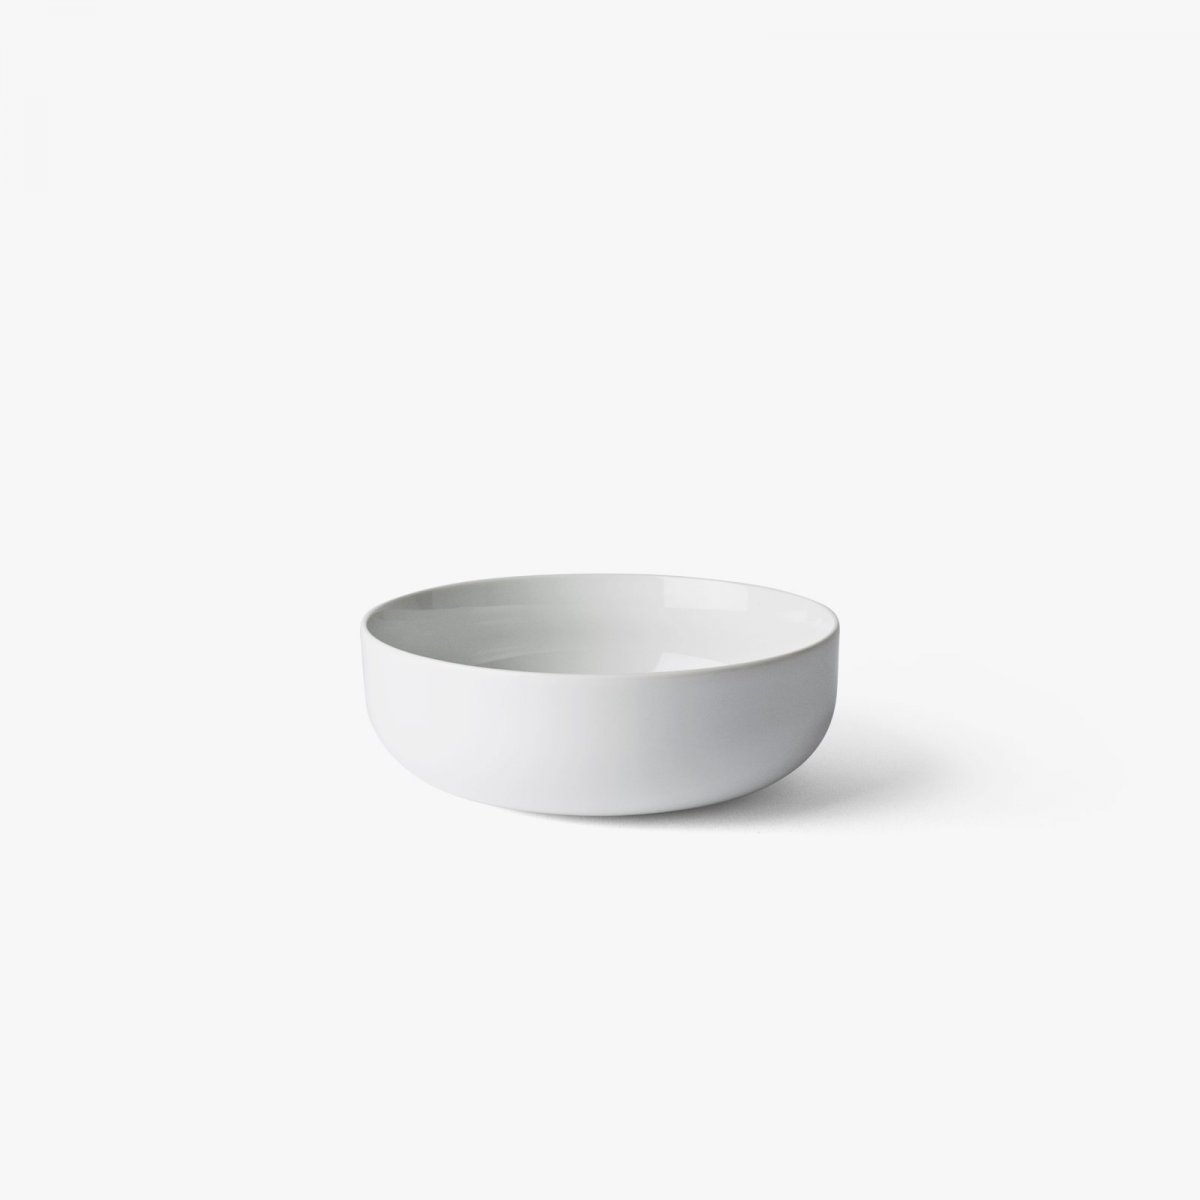 New Norm Bowl, Ø 17.5 cm, white.